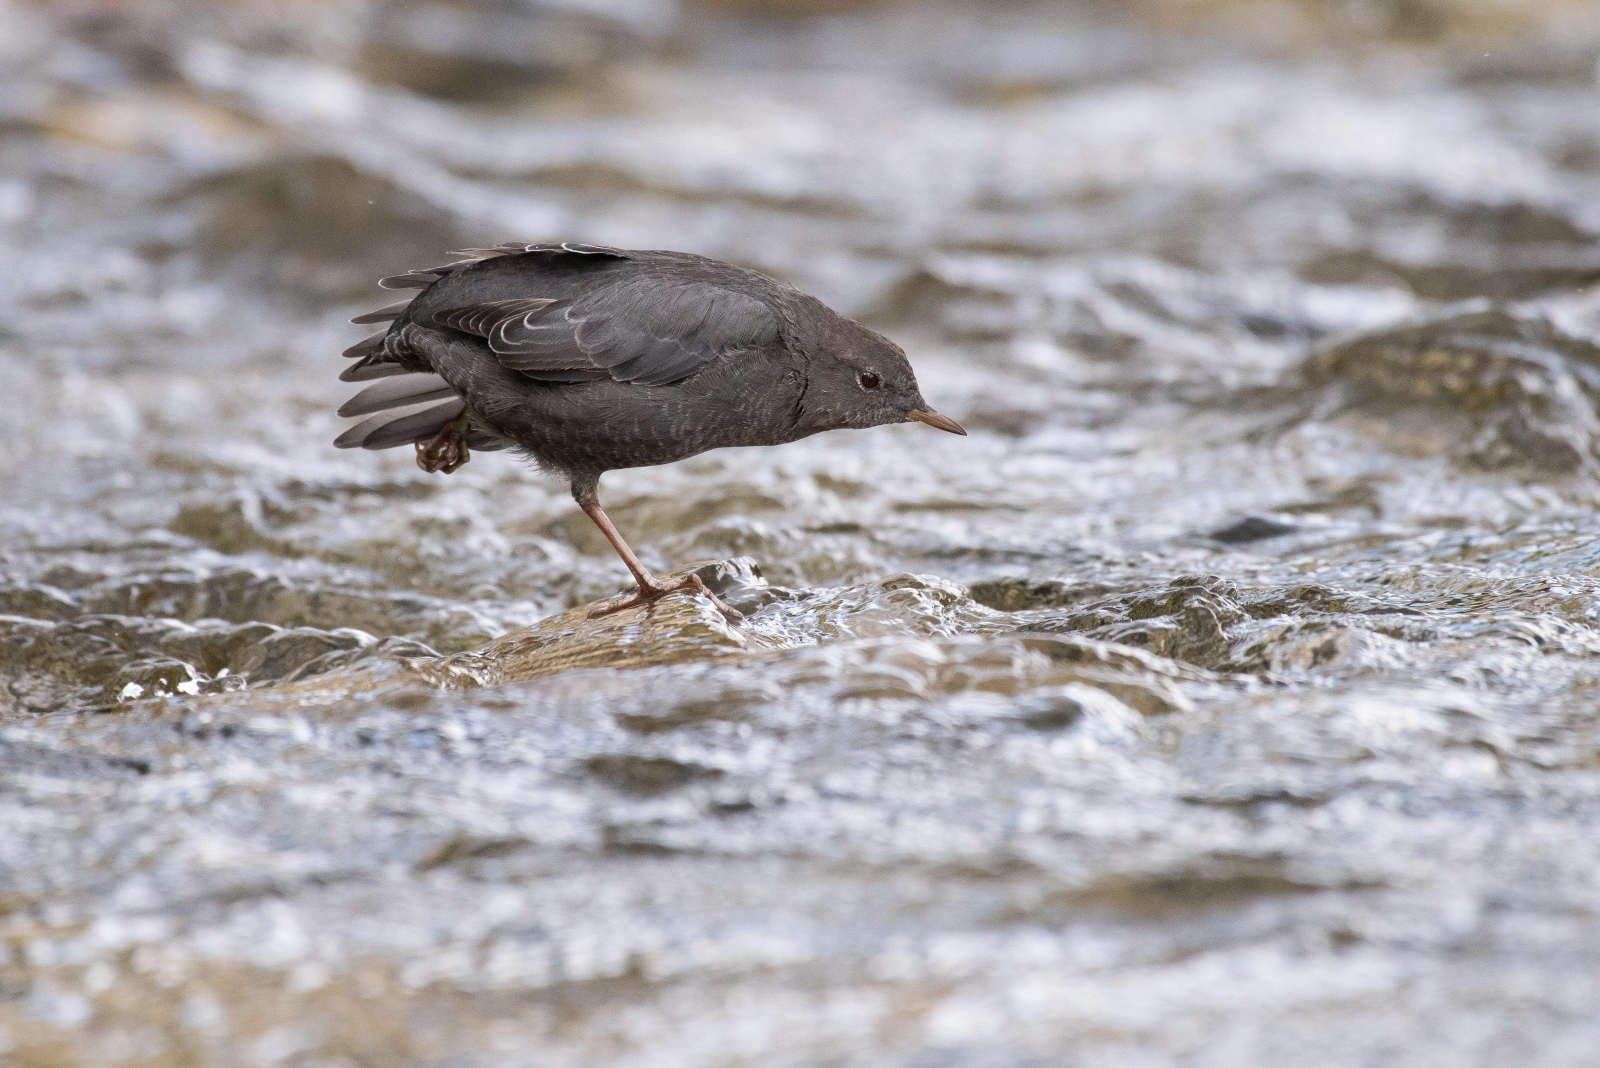 The American Dipper, or Water Ouzel, on the Highwood River just downstream of where logging will occur. Photo provided by Stephen Legault